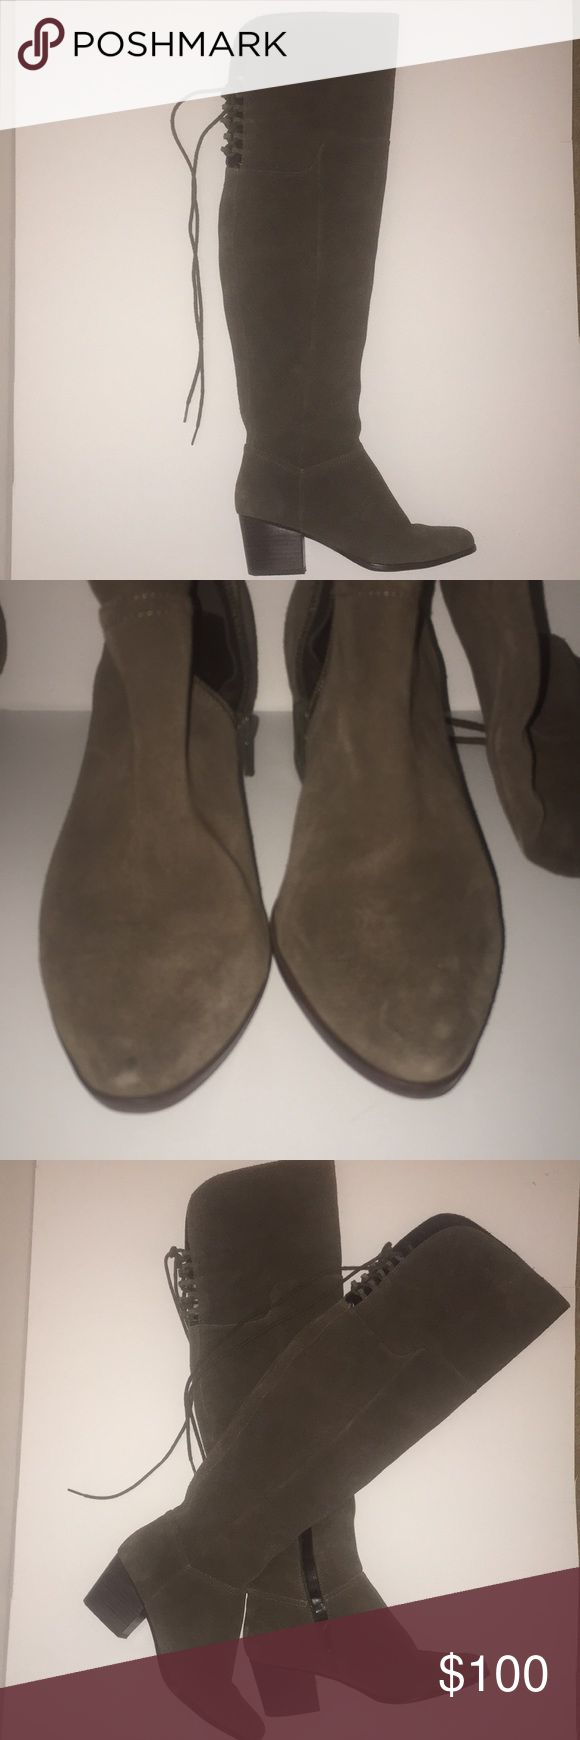 ALDO Knee High Boots Gorgeous Suede Knee High Boots Great with any outfit!  Heel height: 2.5 inches Aldo Shoes Heeled Boots